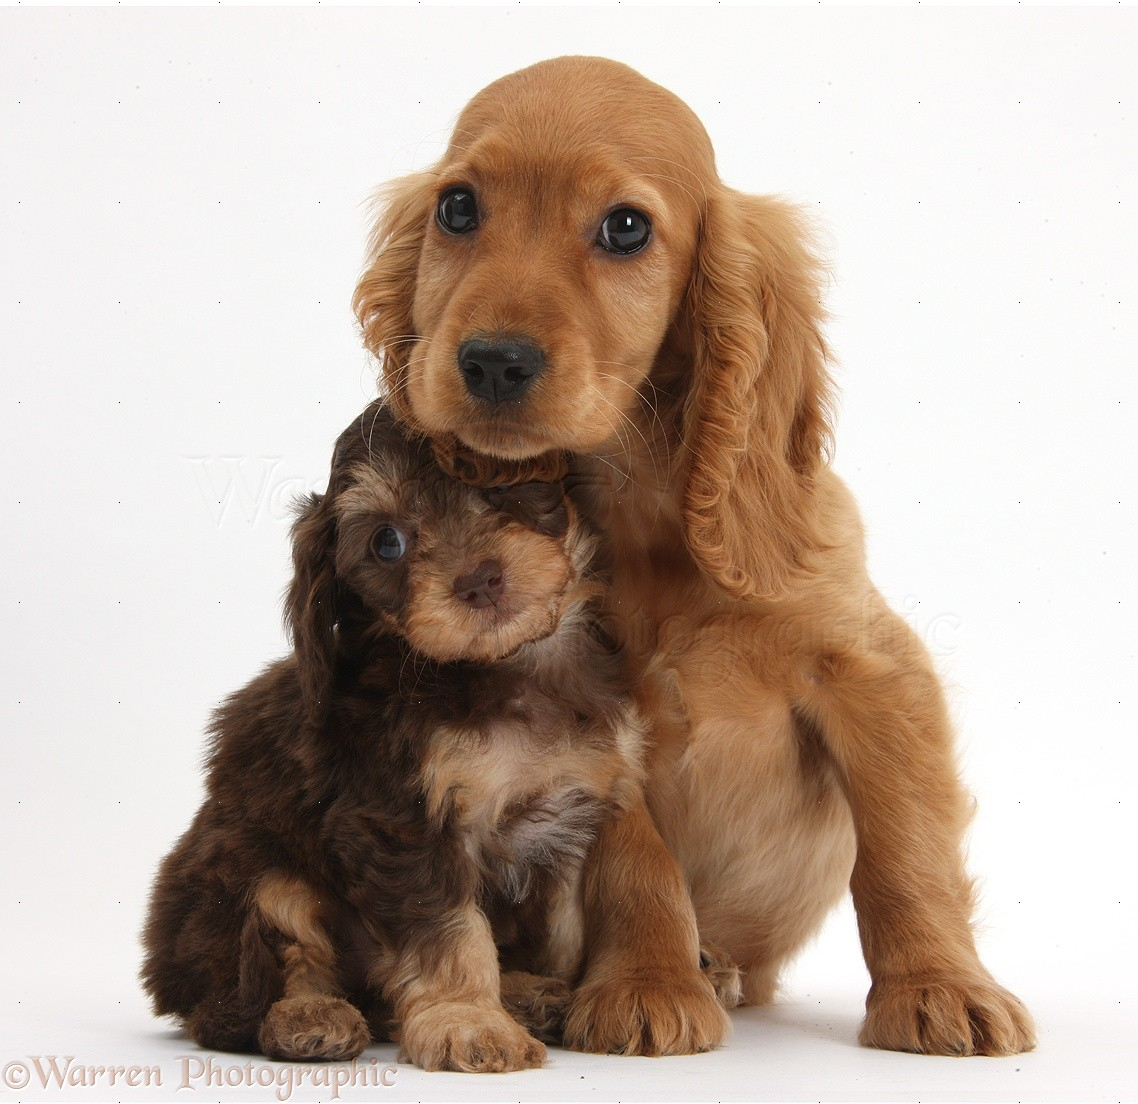 Dogs Cute Daxiedoodle And Golden Cocker Spaniel Puppies Photo Wp36705